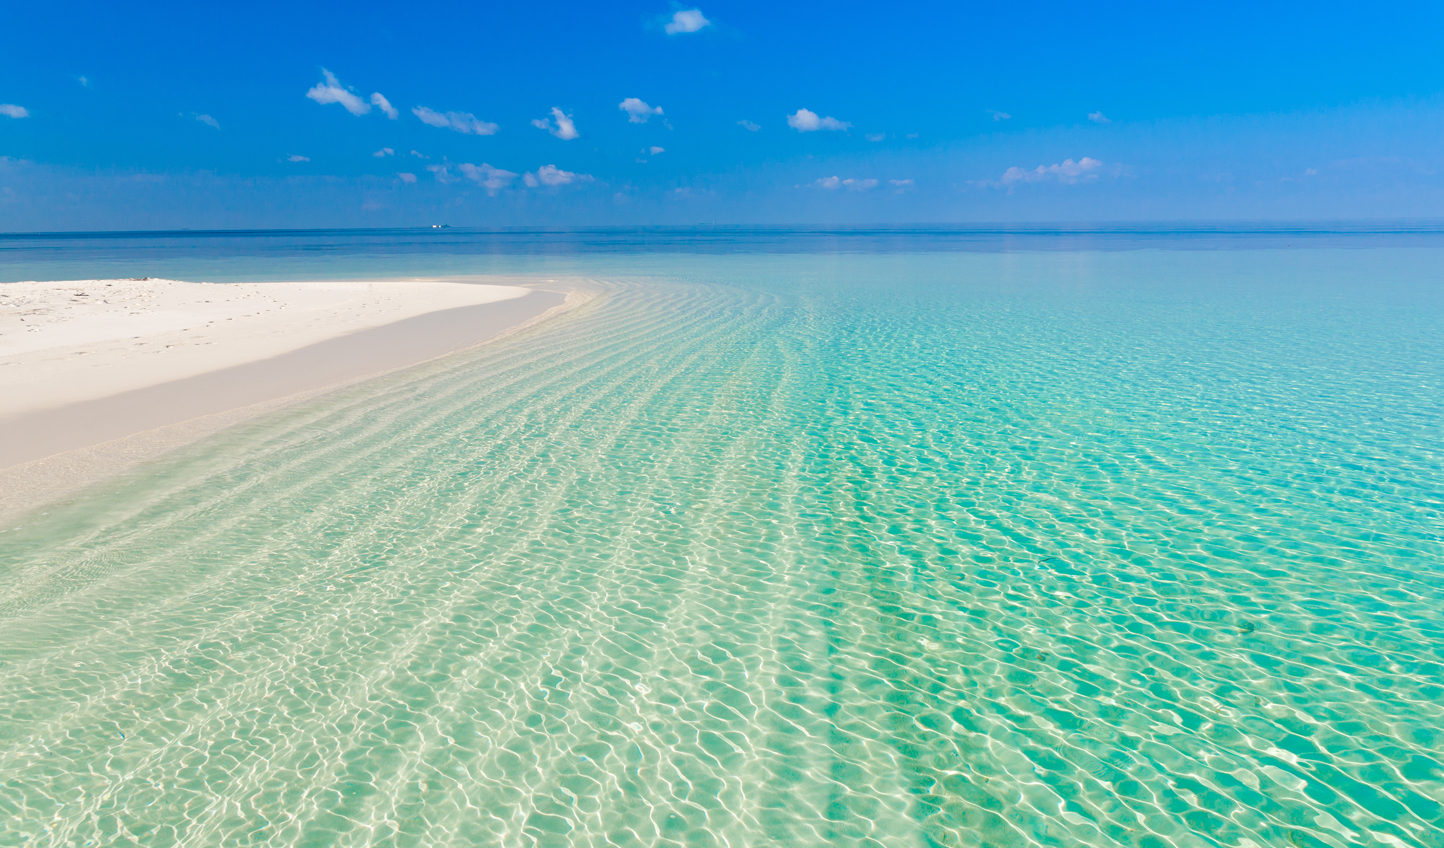 Dip your toe in crystal clear waters